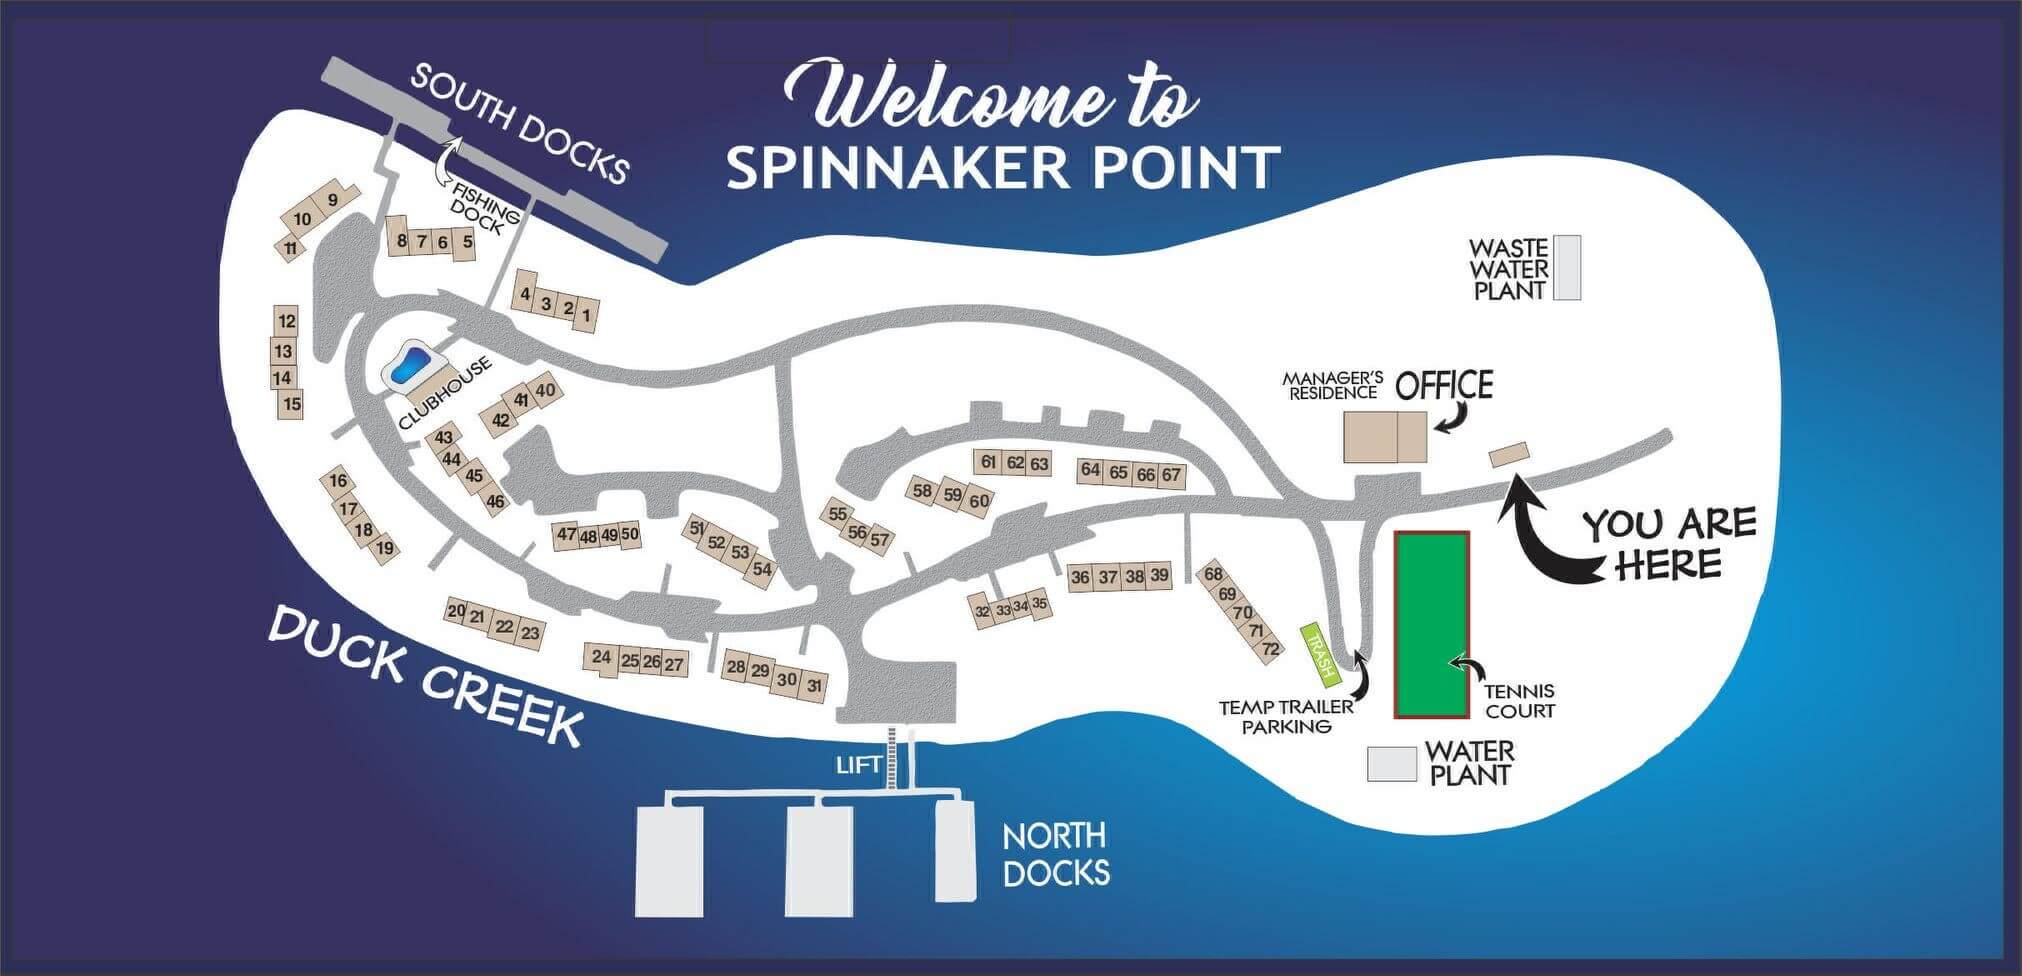 The welcome sign here at Spinnaker Point